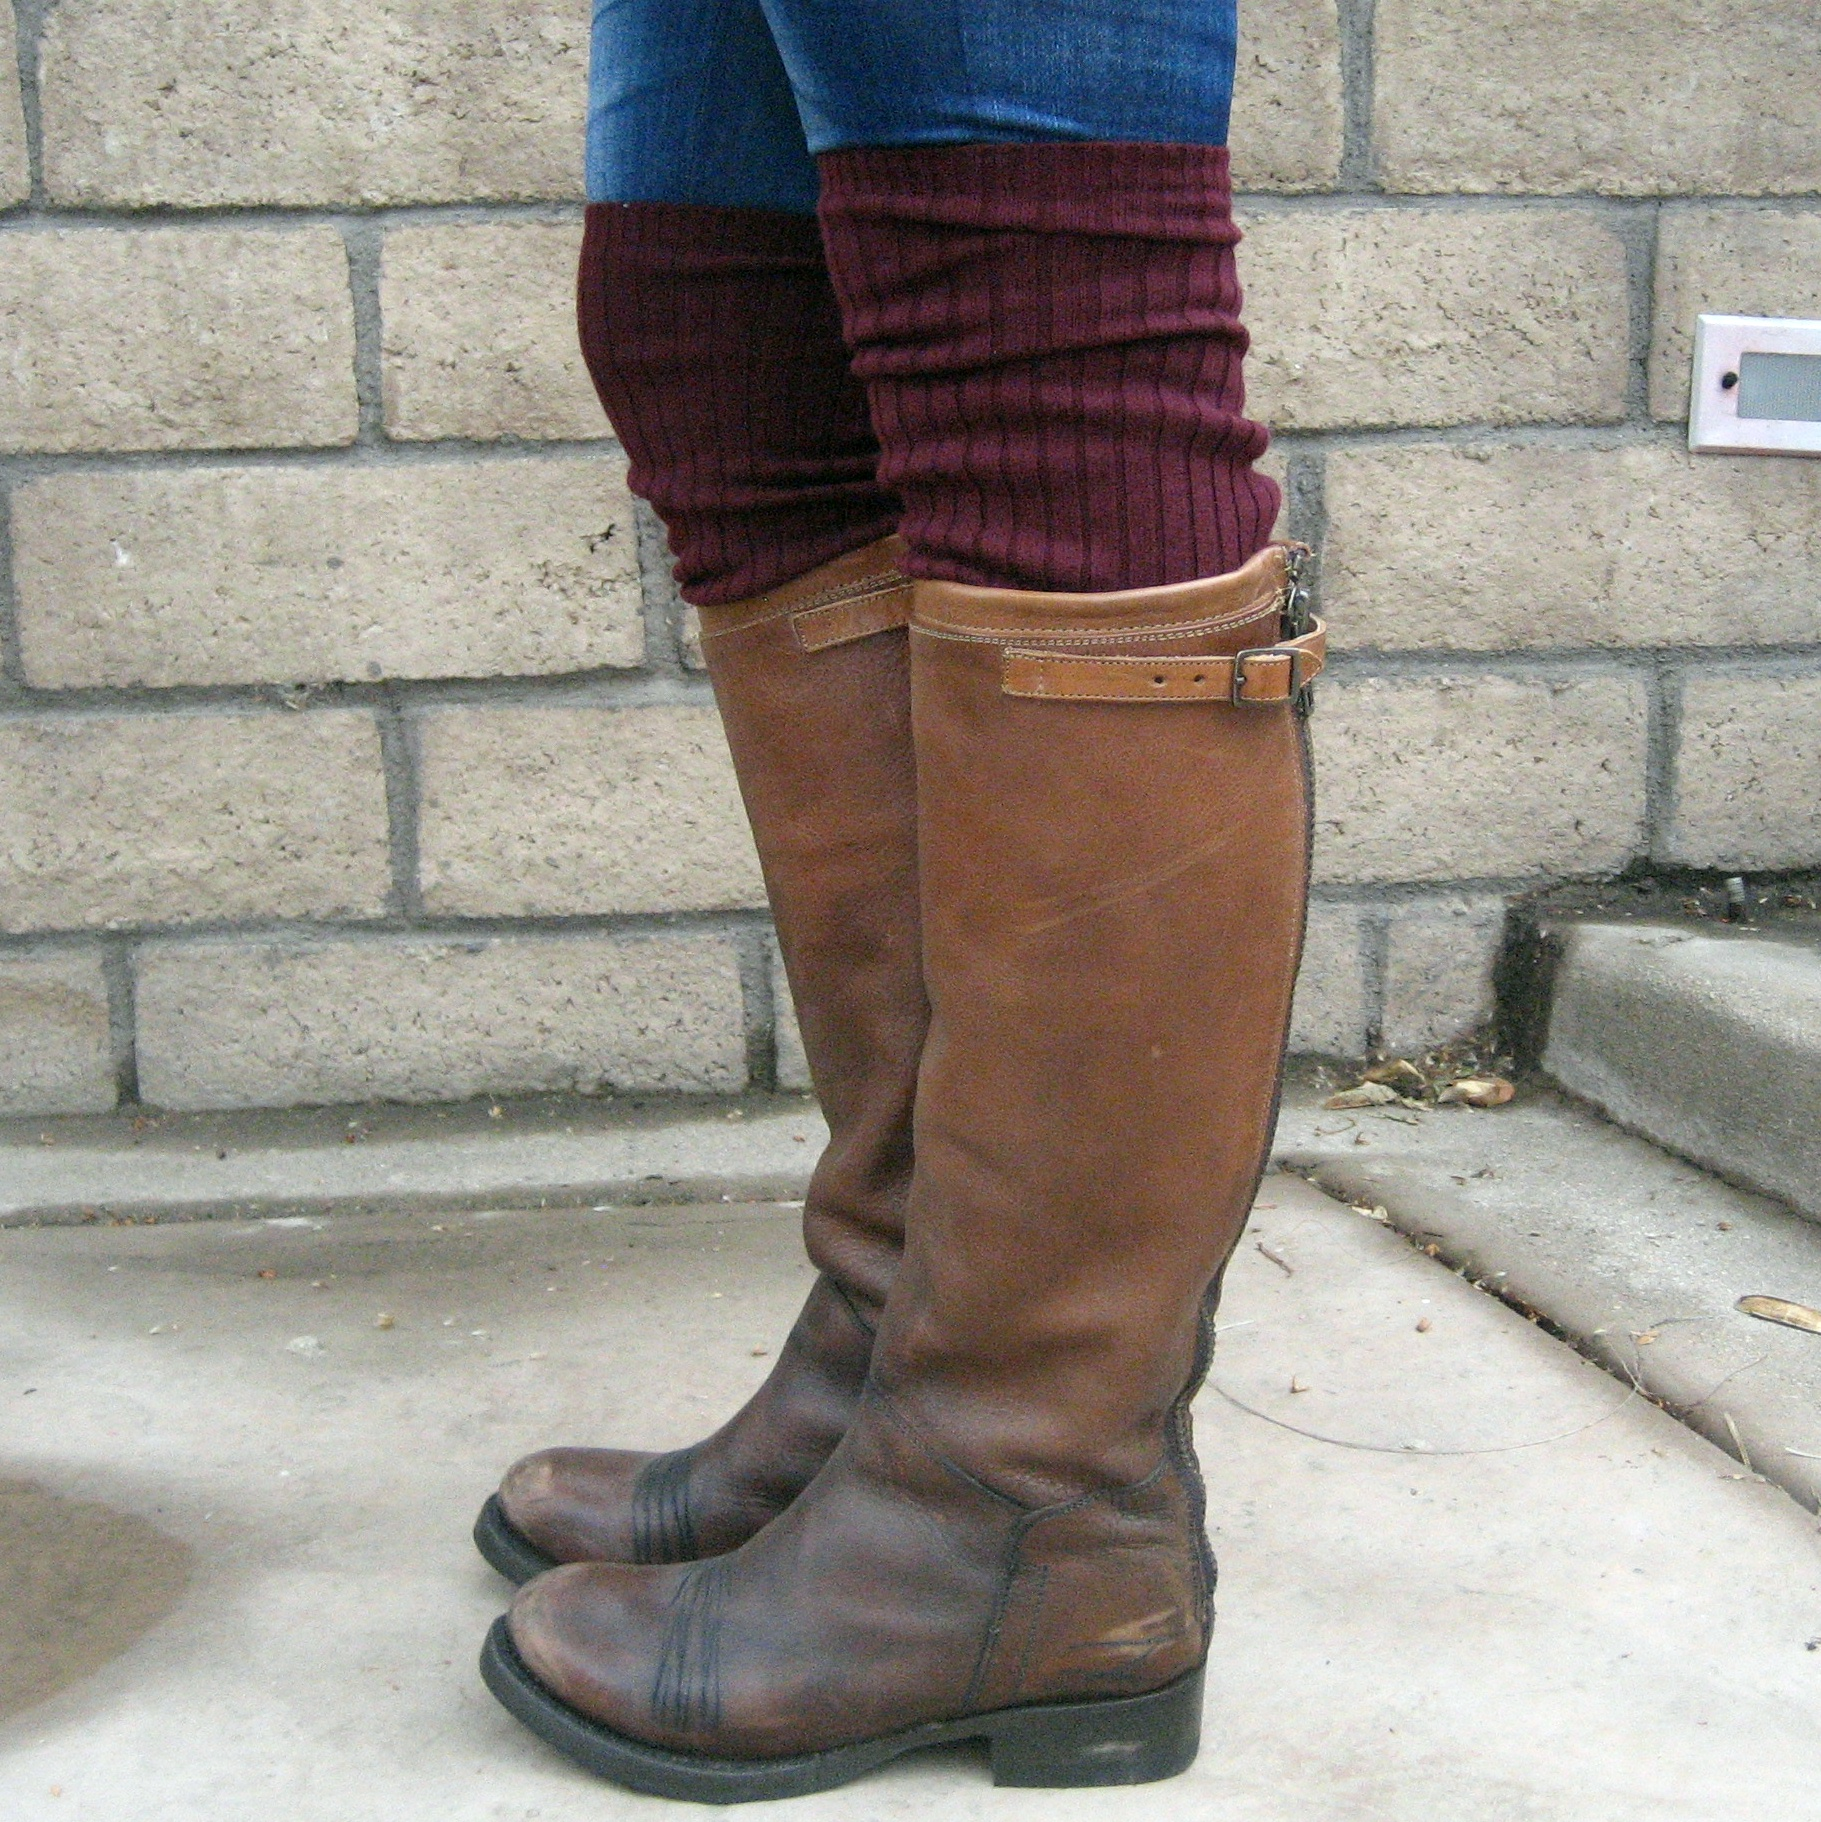 Rib knit bootsocks